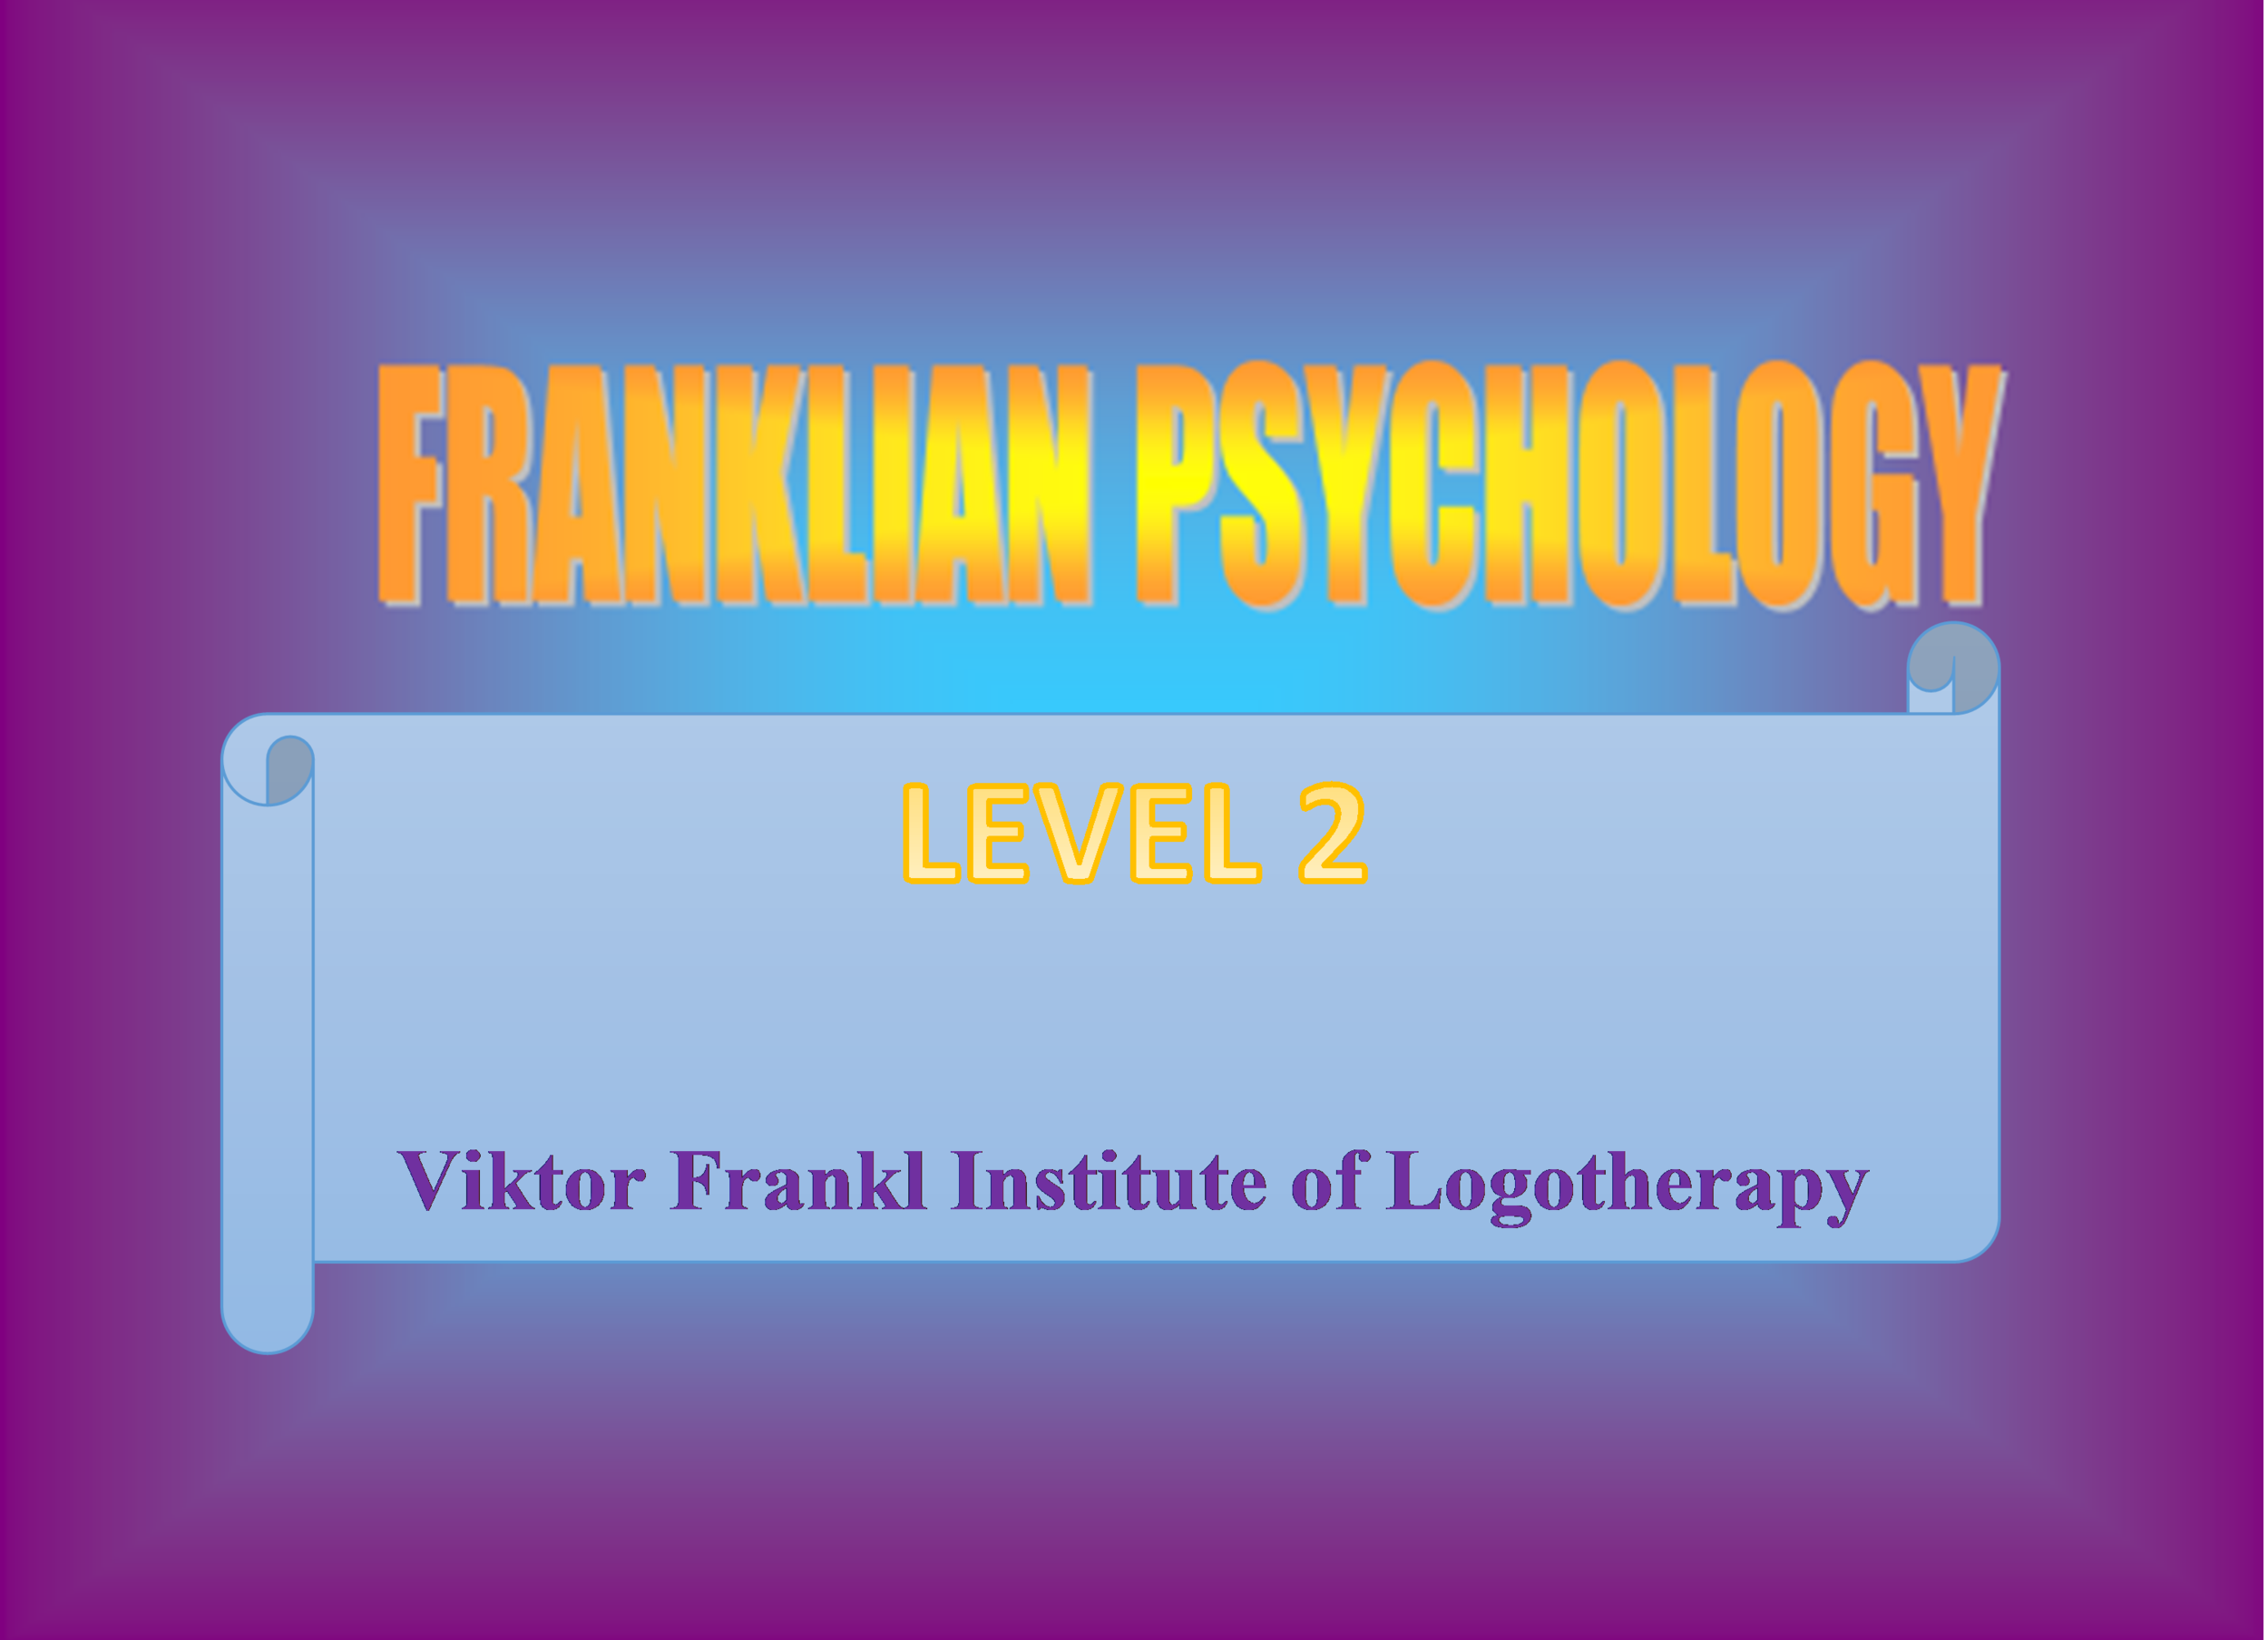 Franklian Psychology – Level 2 Advanced Study